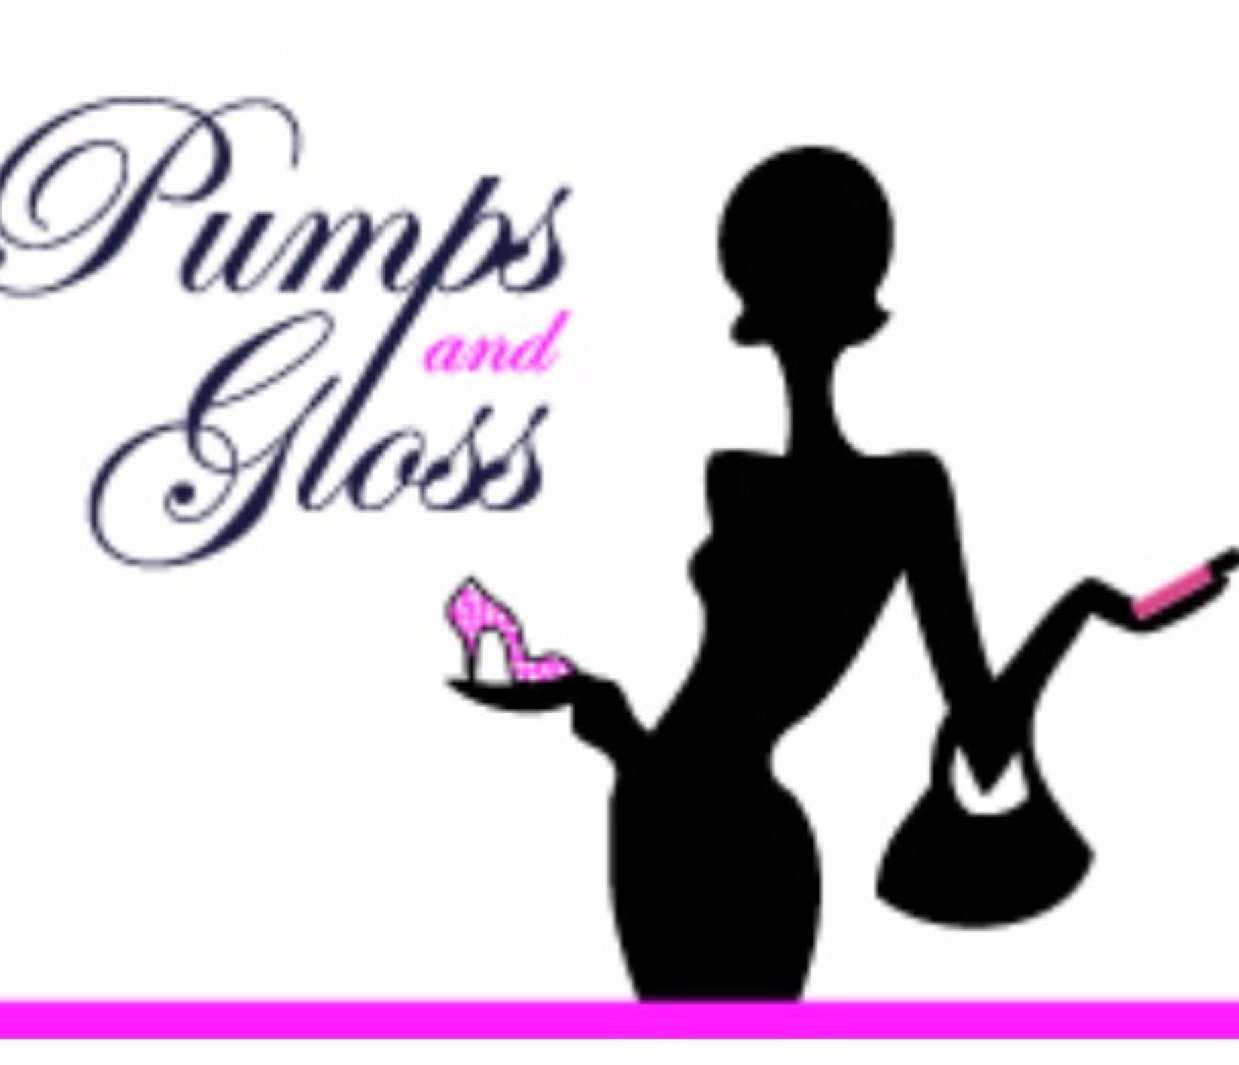 Pumps and Gloss Social Profile